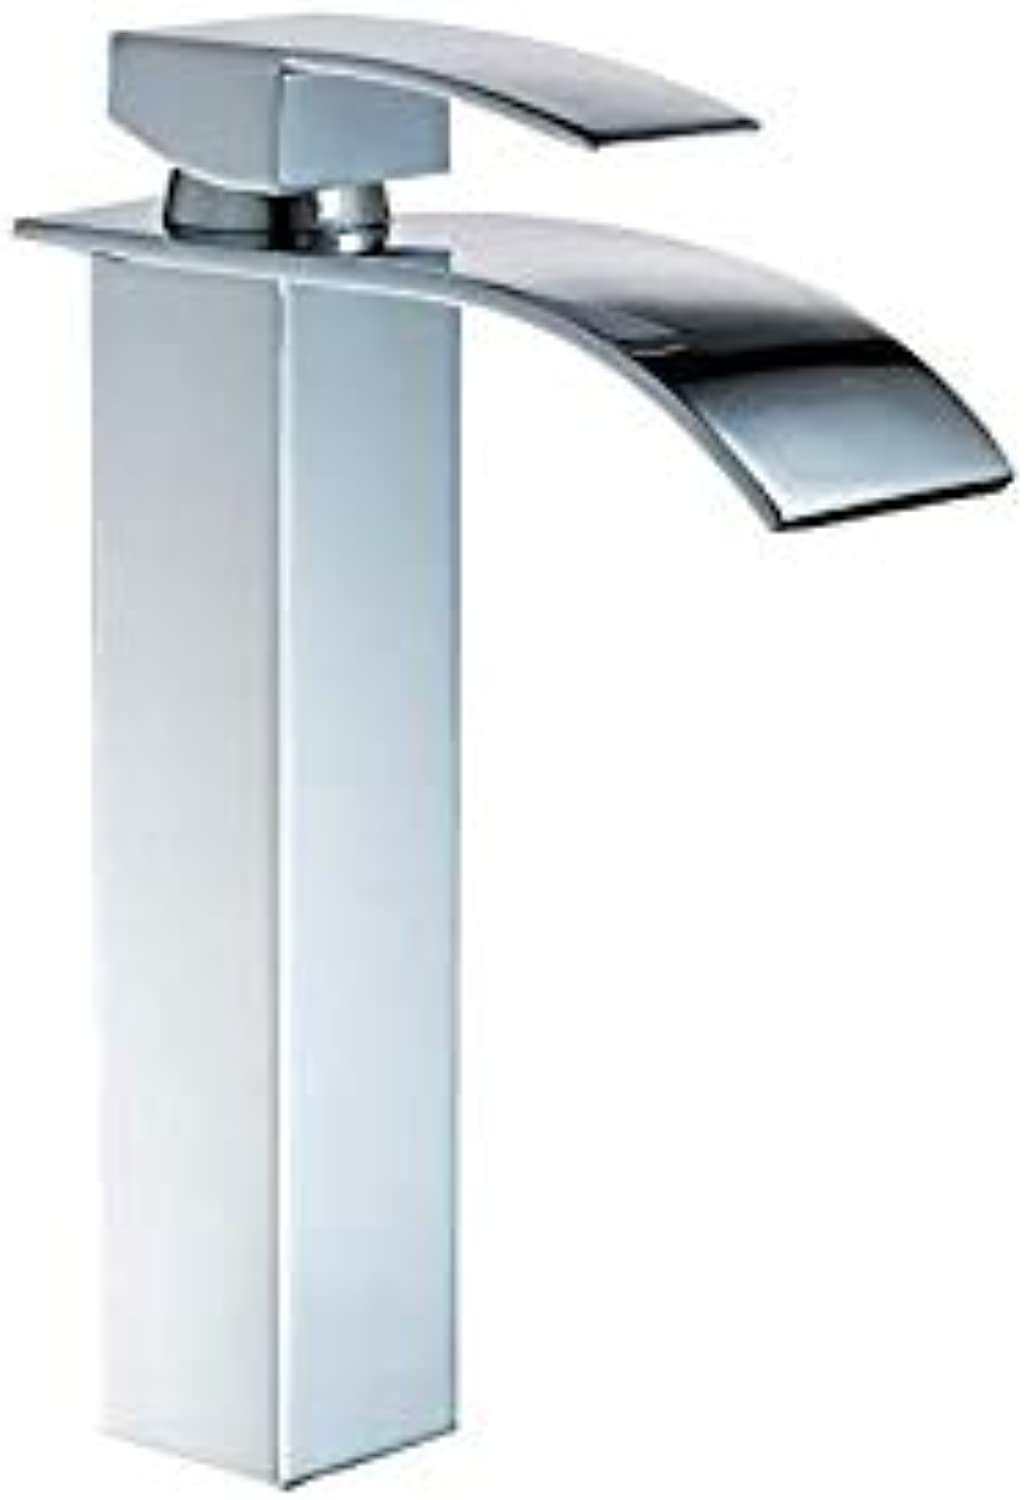 Kitchen Fauct Taps Chrome Waterfall Basin Faucet???Square Single Hole Washbasin Hot and Cold Water Mixer (color   -, Size   -)